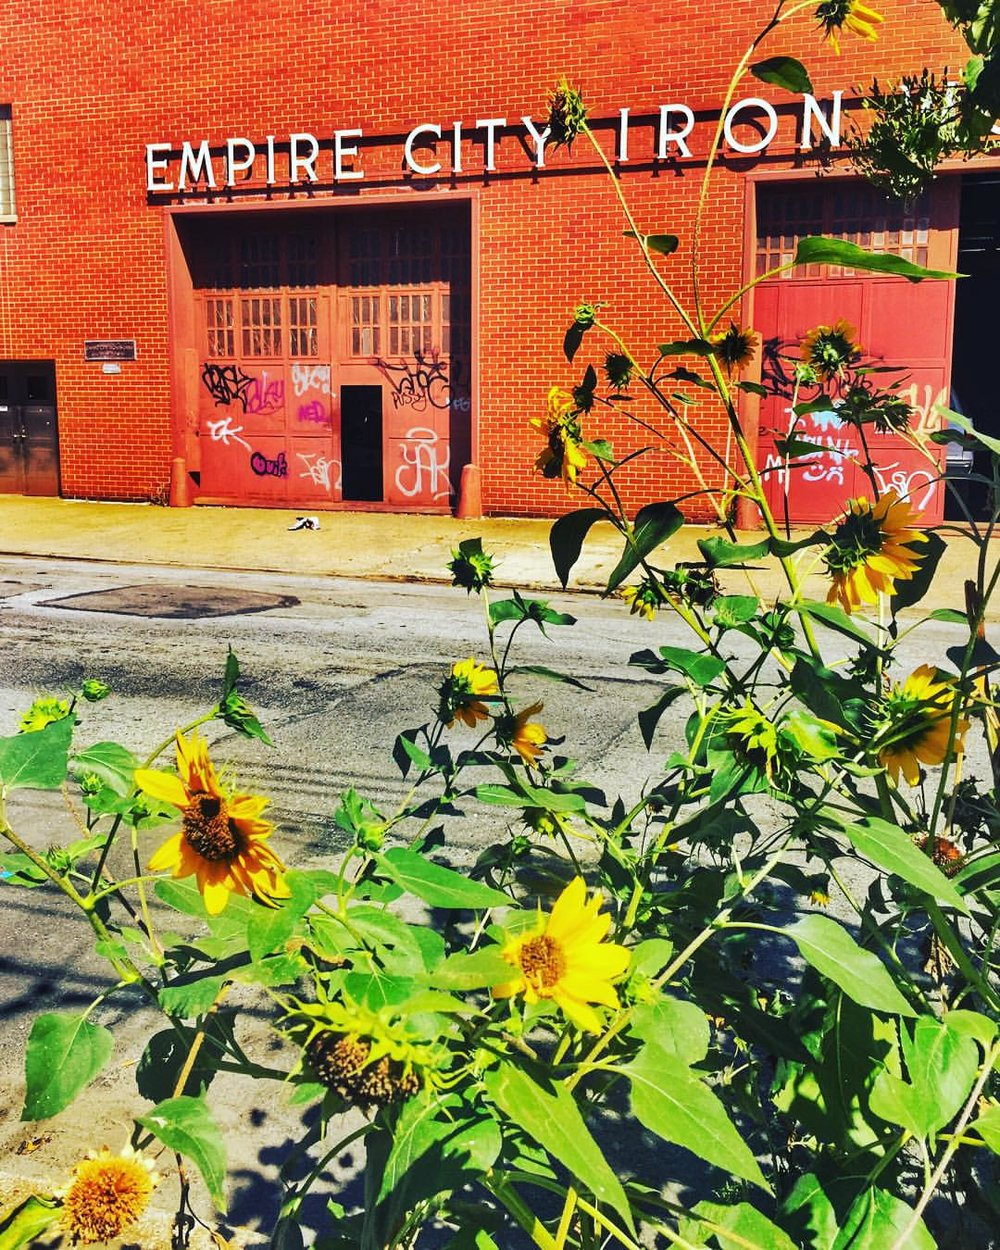 Est 1904 🌻 #longislandcity #lic #empirecityironworks #queenscapes #itsinqueens #queensnyc #heartofqueens (at Empire City Iron Wks)